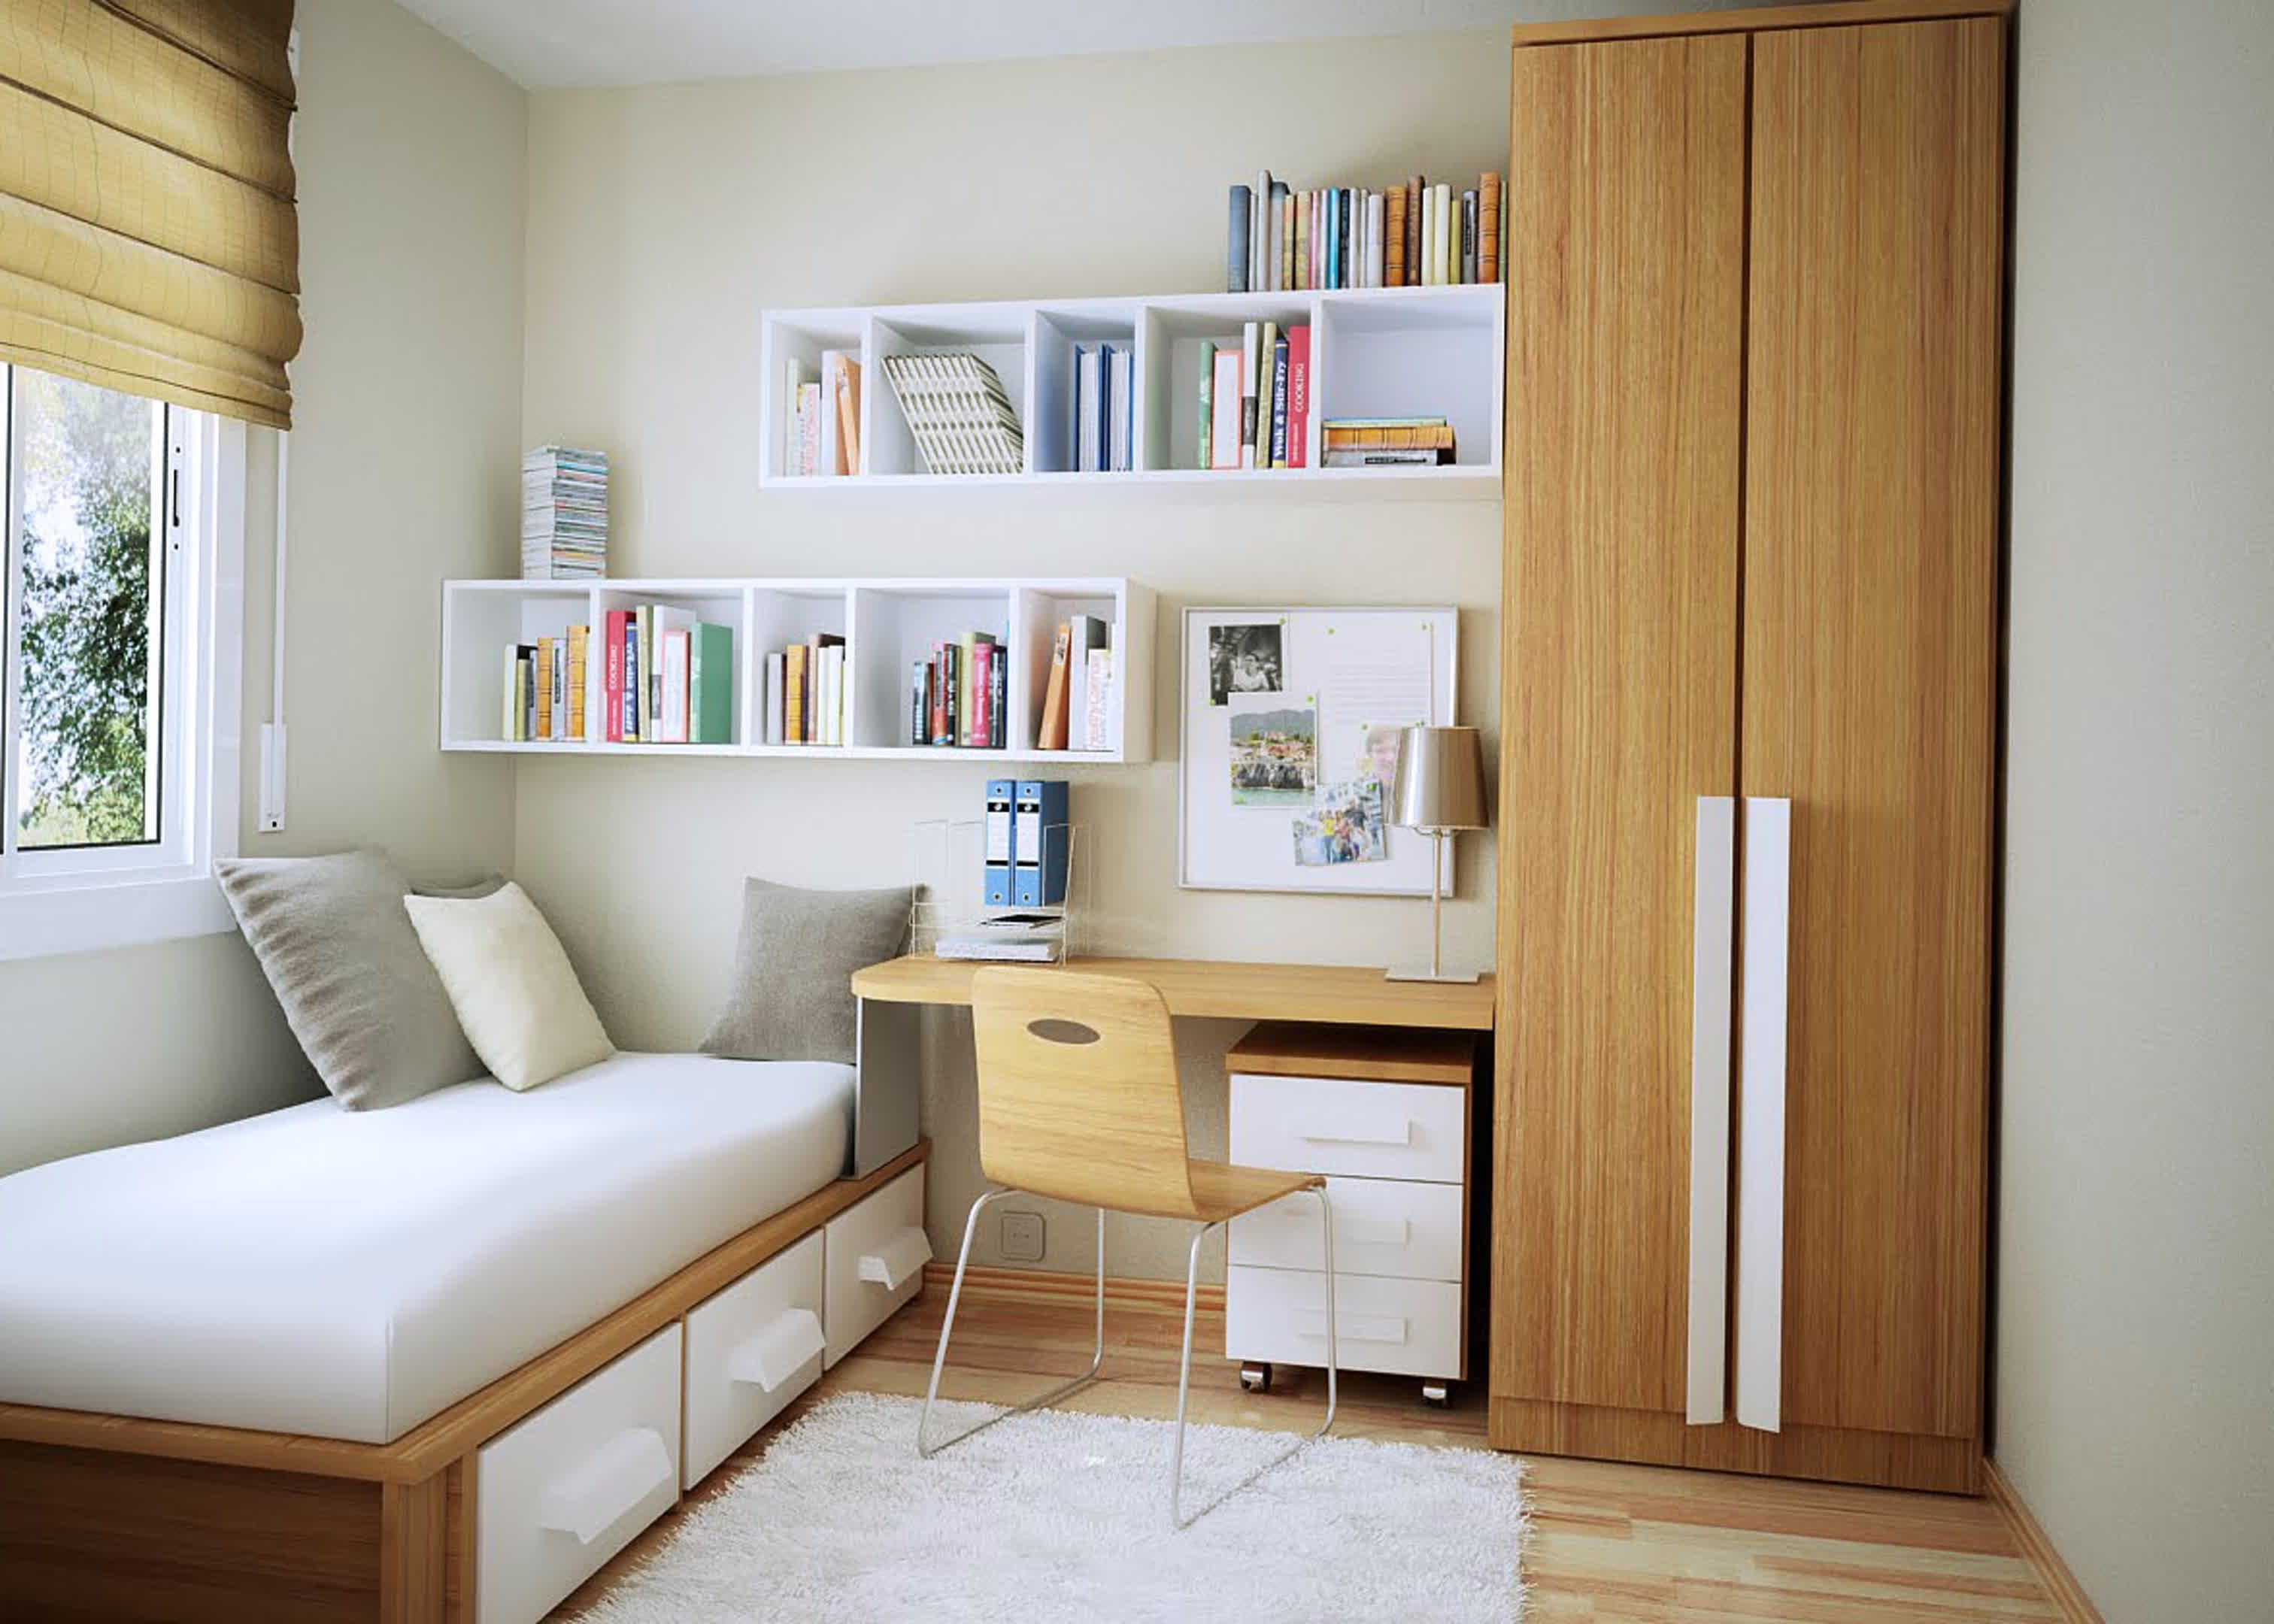 Beautiful Home Interior Furniture For Small Bedroom Design Ideas  # Muebles Eh Elegant House